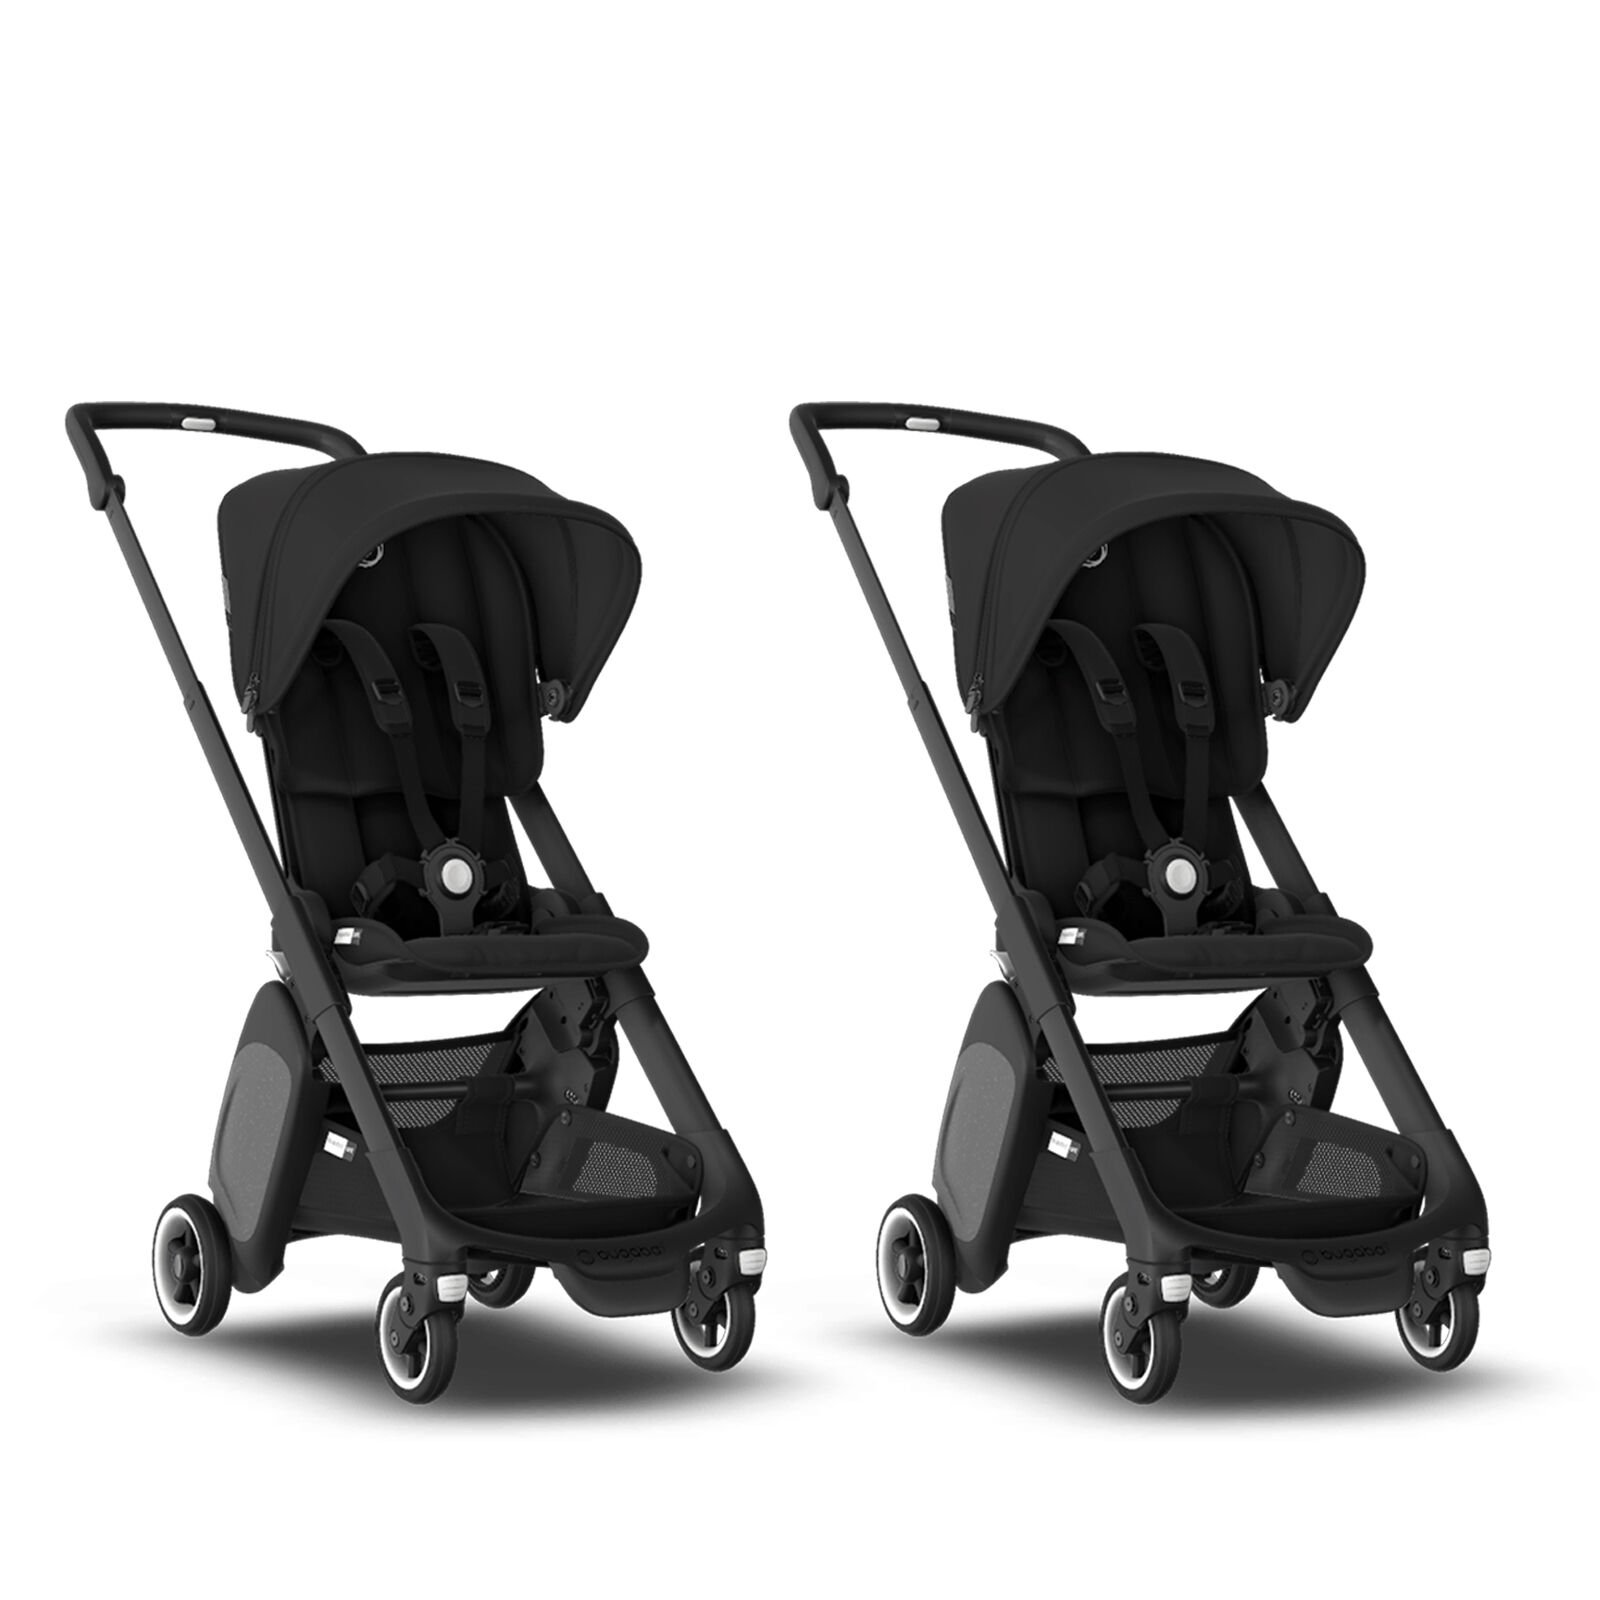 Two Bugaboo Ant strollers